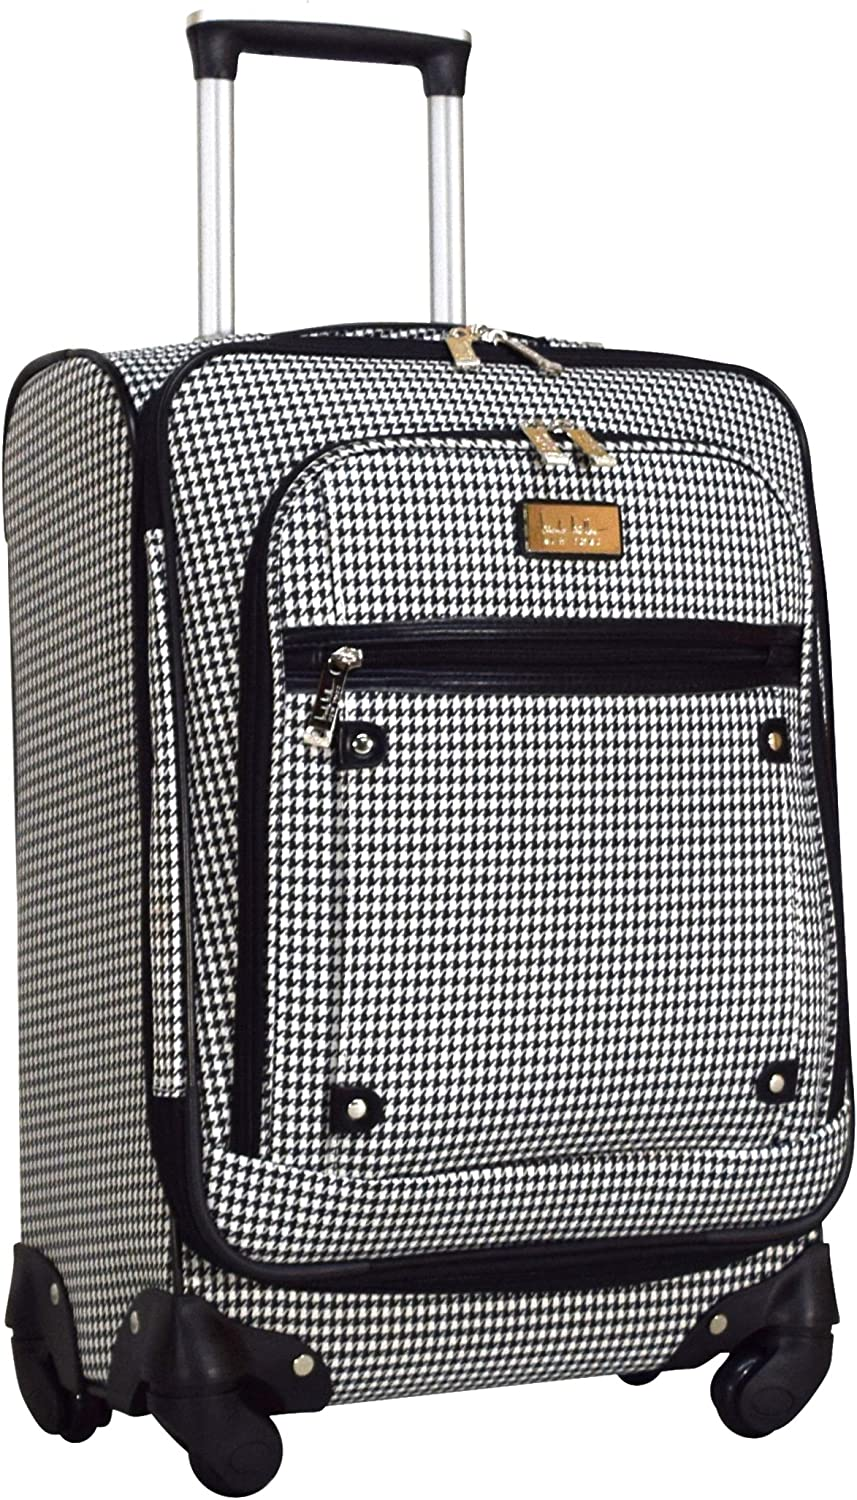 Nicole Miller New York Luggage Collection - Designer Lightweight Softside Expandable Suitcase- 20 Inch Carry On Bag with 4-Rolling Spinner Wheels (White)